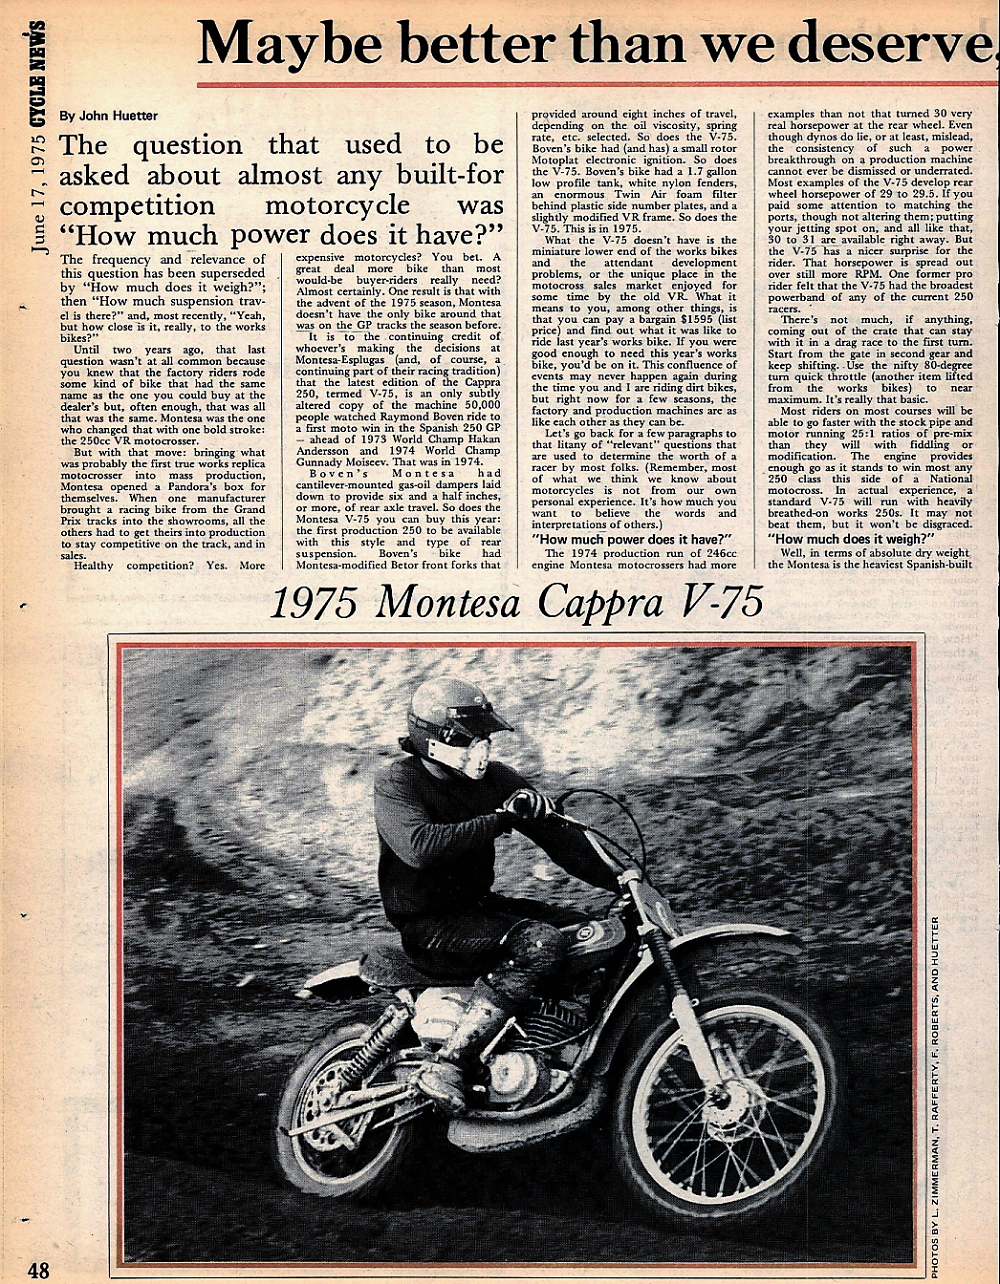 1975 Montesa Cappra V-75 road test. 1.jpg